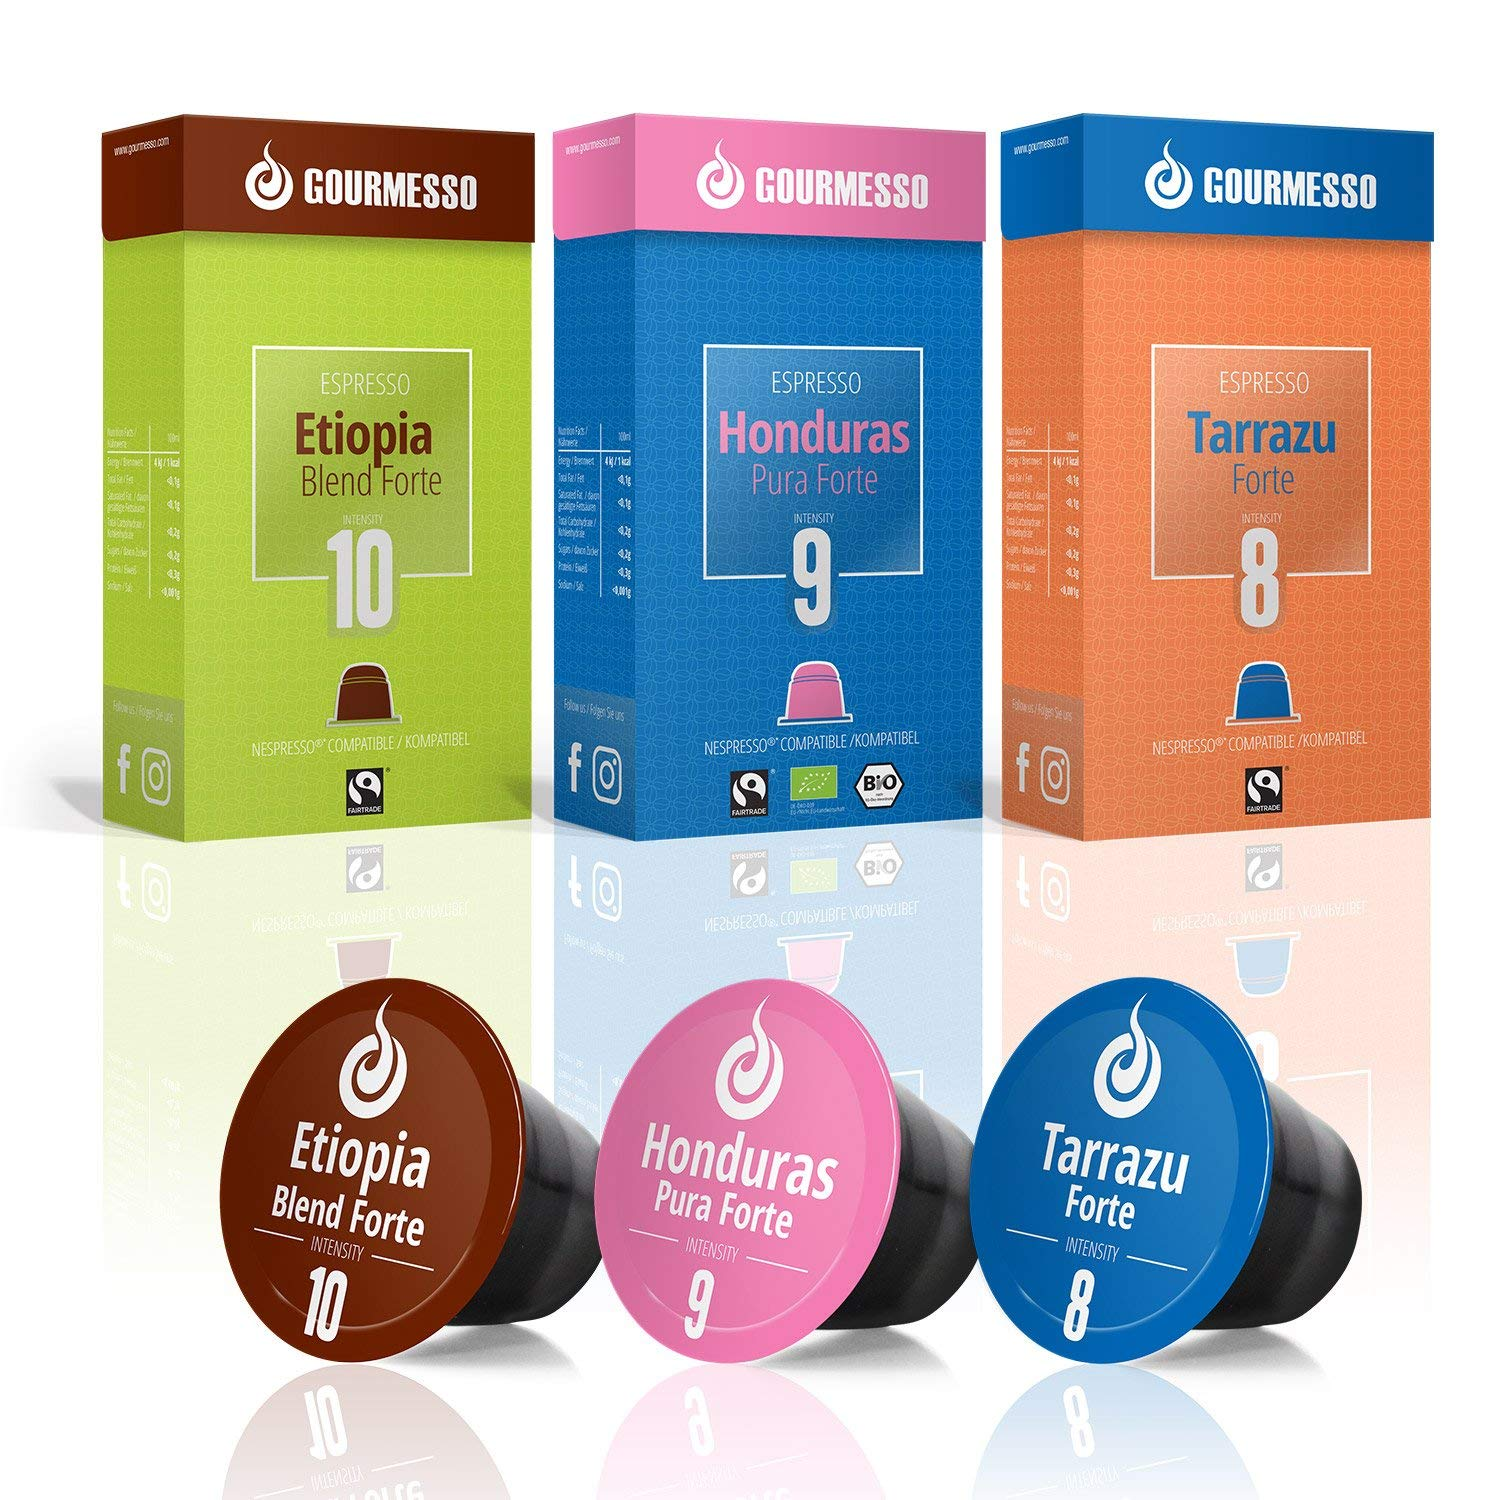 Gourmesso High Intensity Espresso Bundle - 60 High Intensity Coffee Capsules Nespresso Compatible 100% Fair Trade | Includes Organic and Dark Roast Espresso Pods Variety Pack